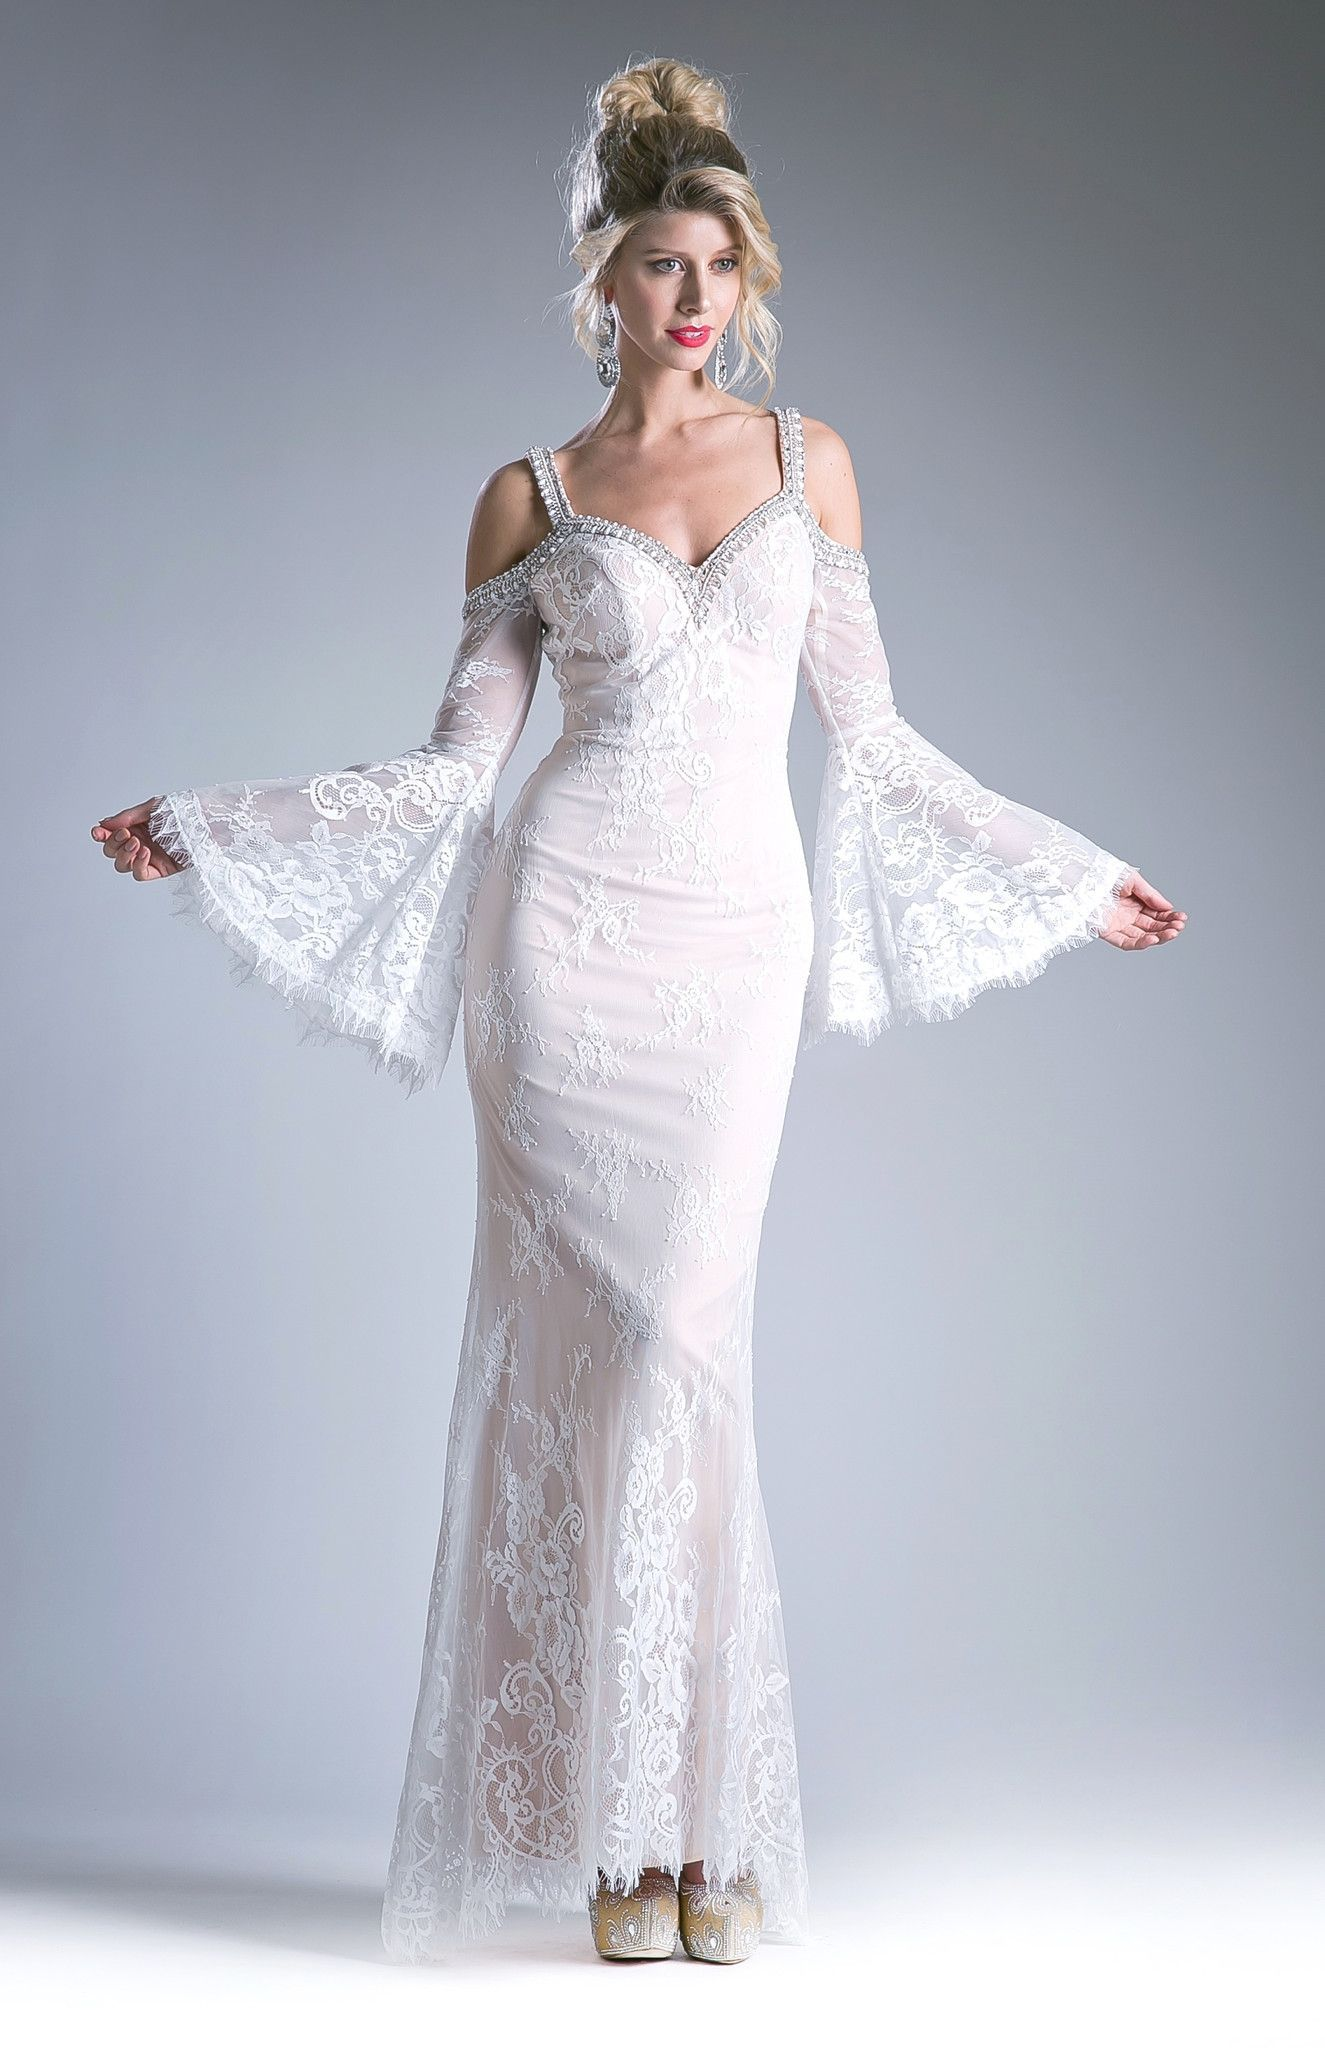 Lace evening dress with bell sleeves by cinderella divine